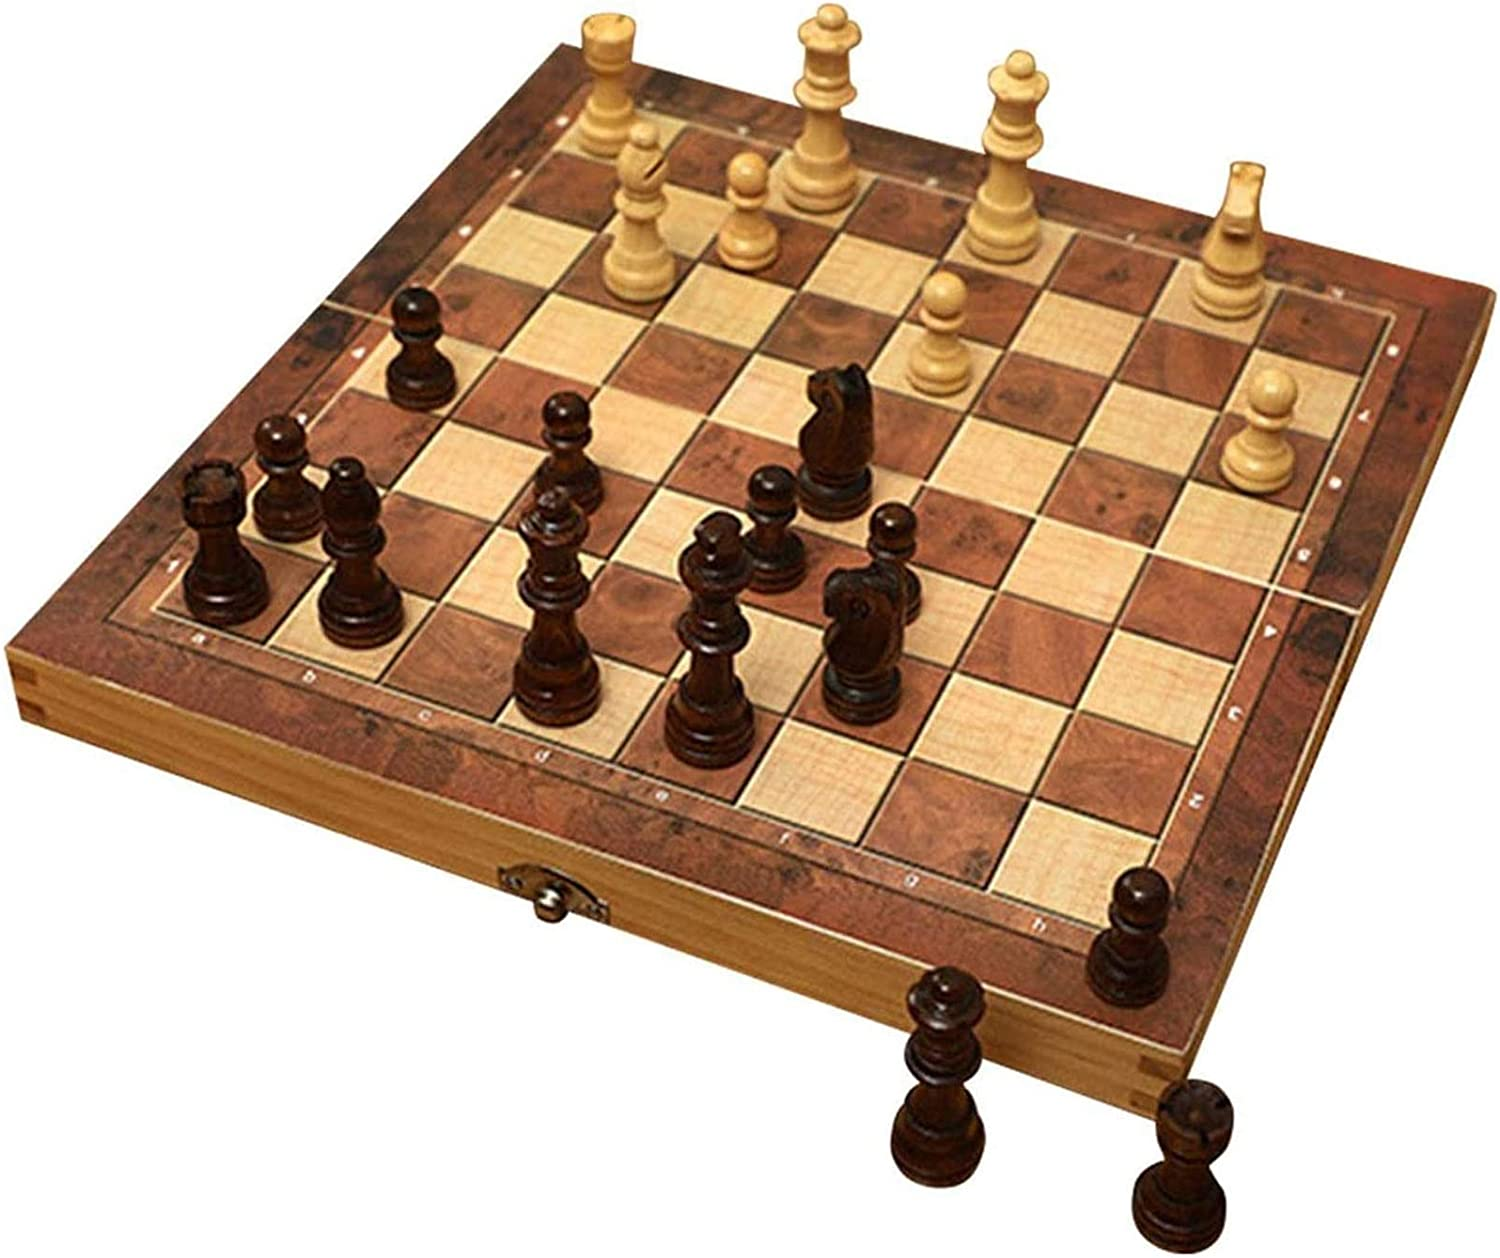 ZJYZJQ Wooden Chess Board Games Set Folding Max Max 81% OFF 76% OFF Box with